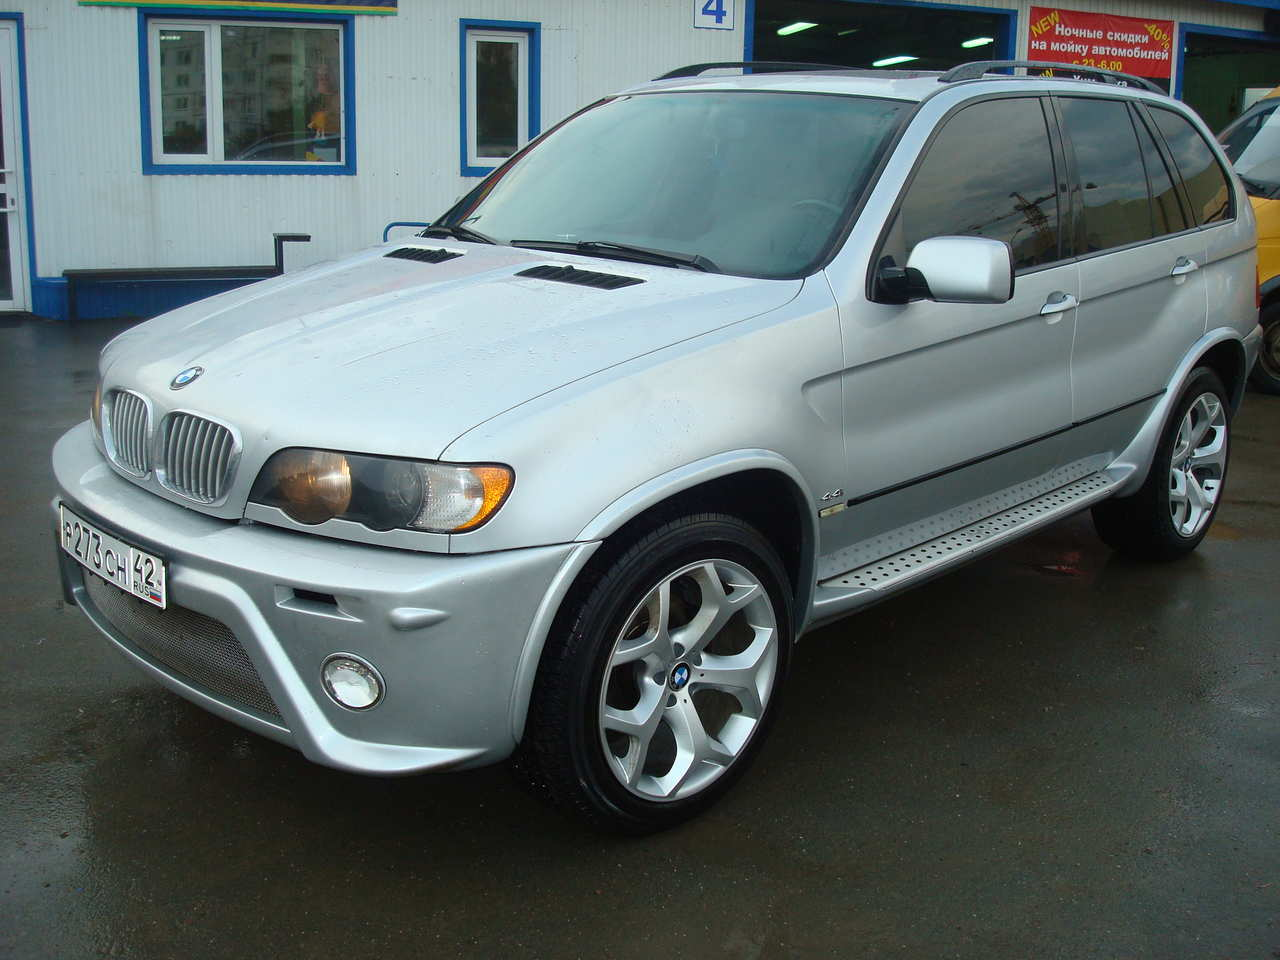 Photo 1 enlarge photo 1280x960 2002 bmw x5 photos